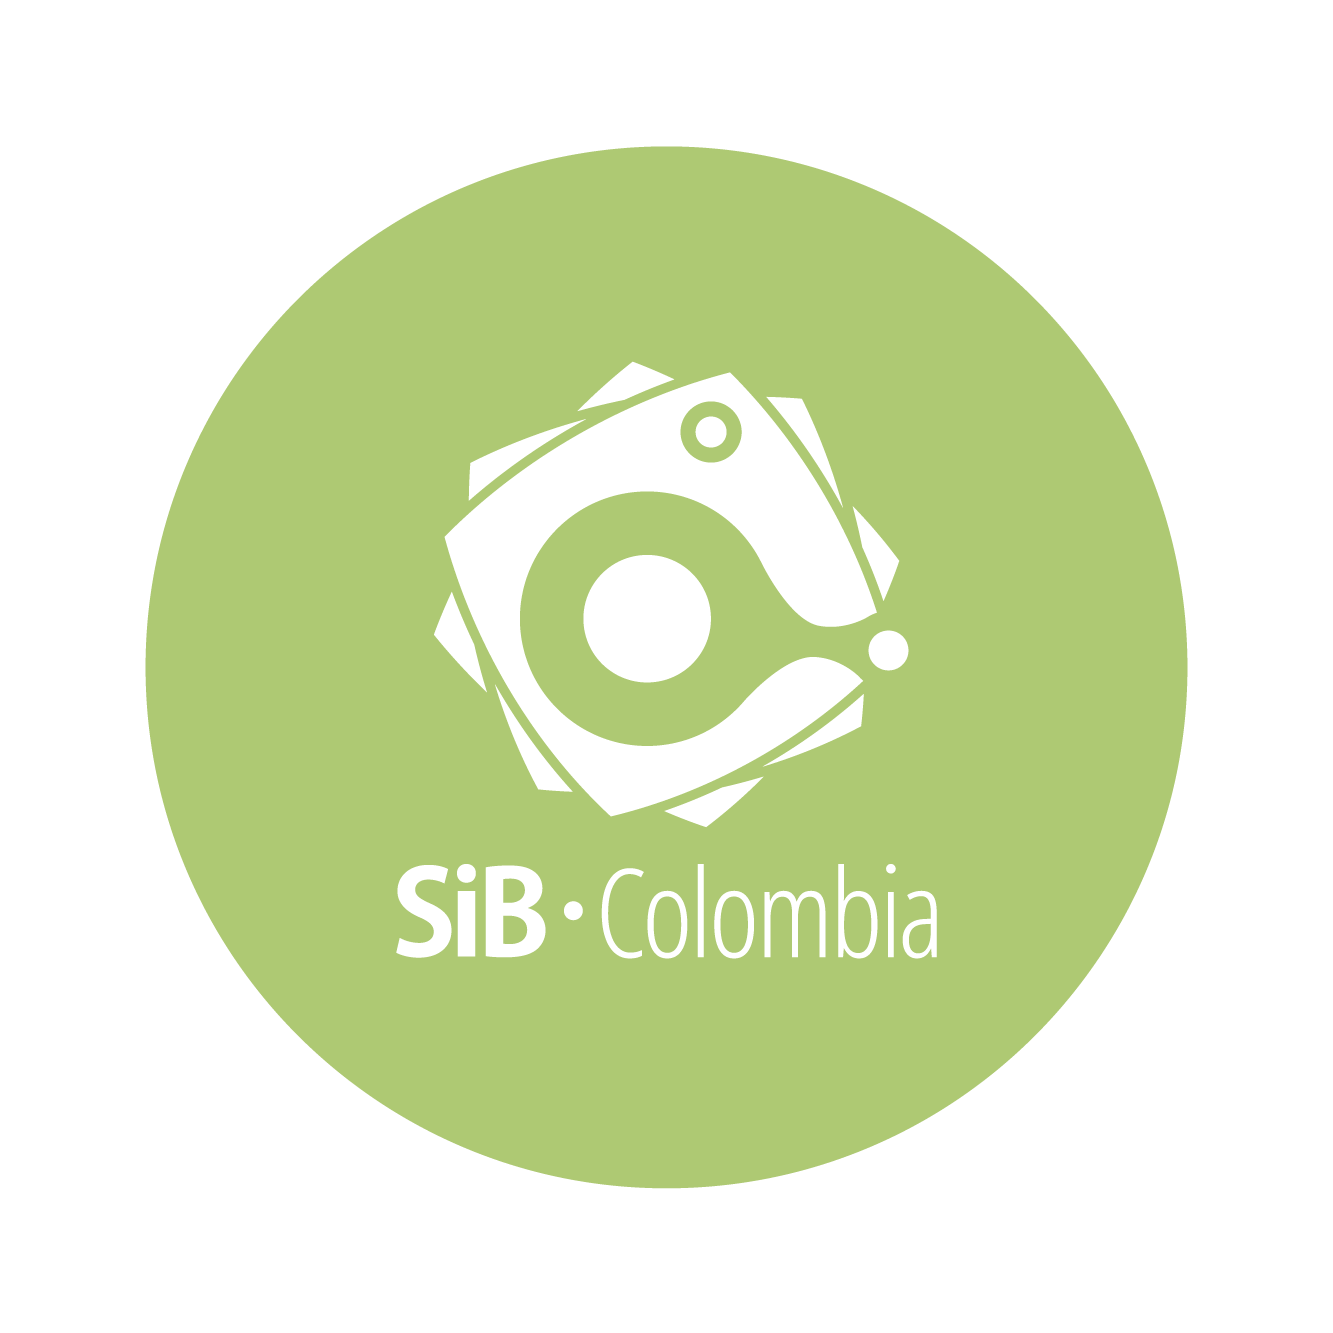 sib-colombia-27